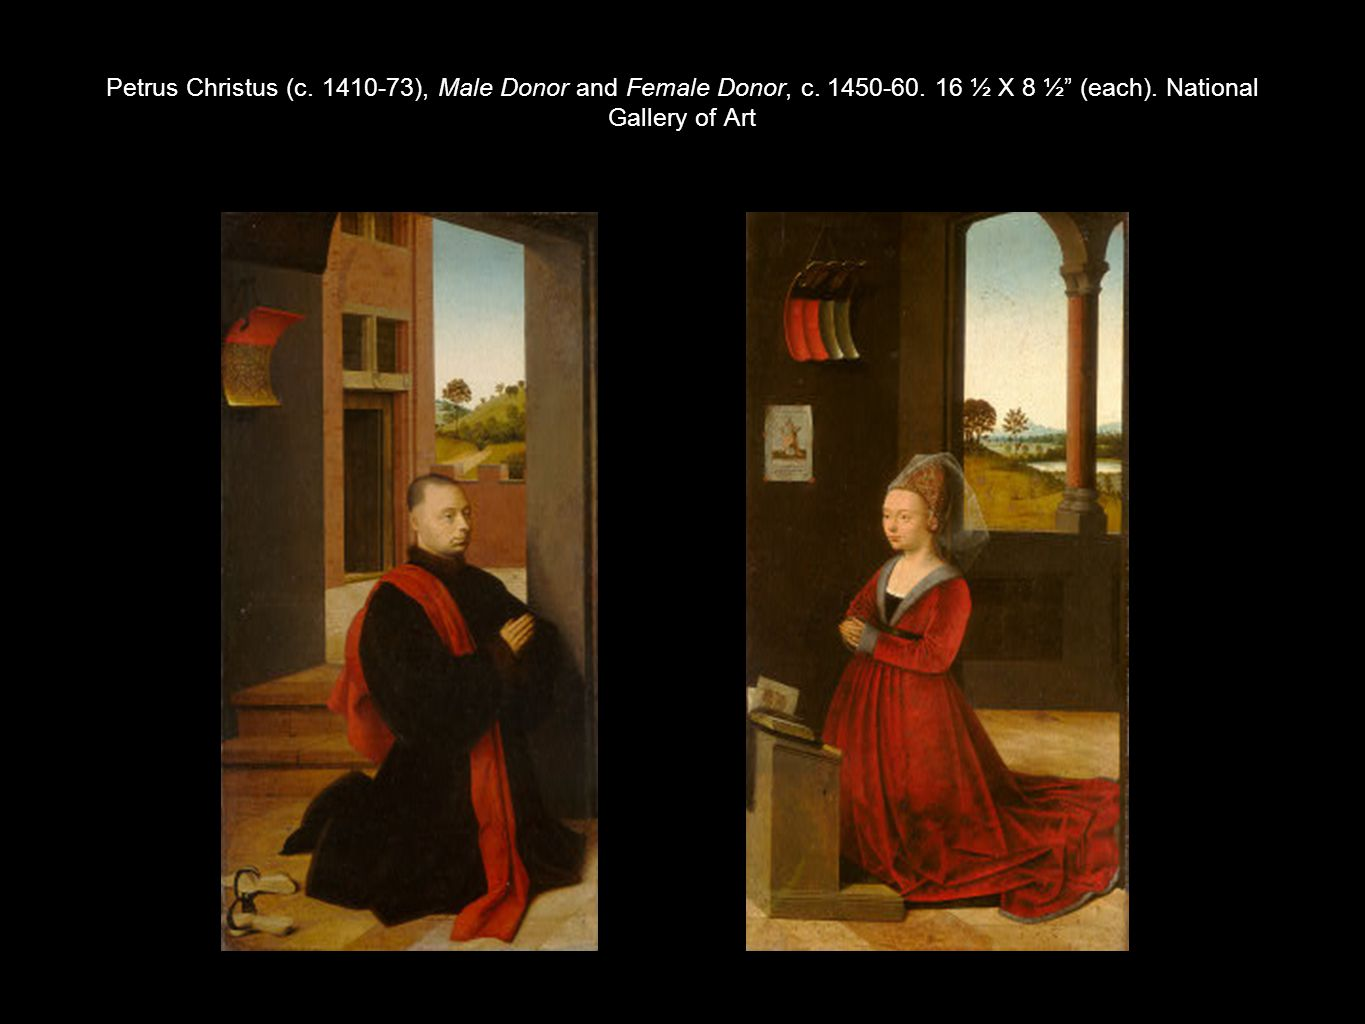 Petrus Christus (c ), Male Donor and Female Donor, c